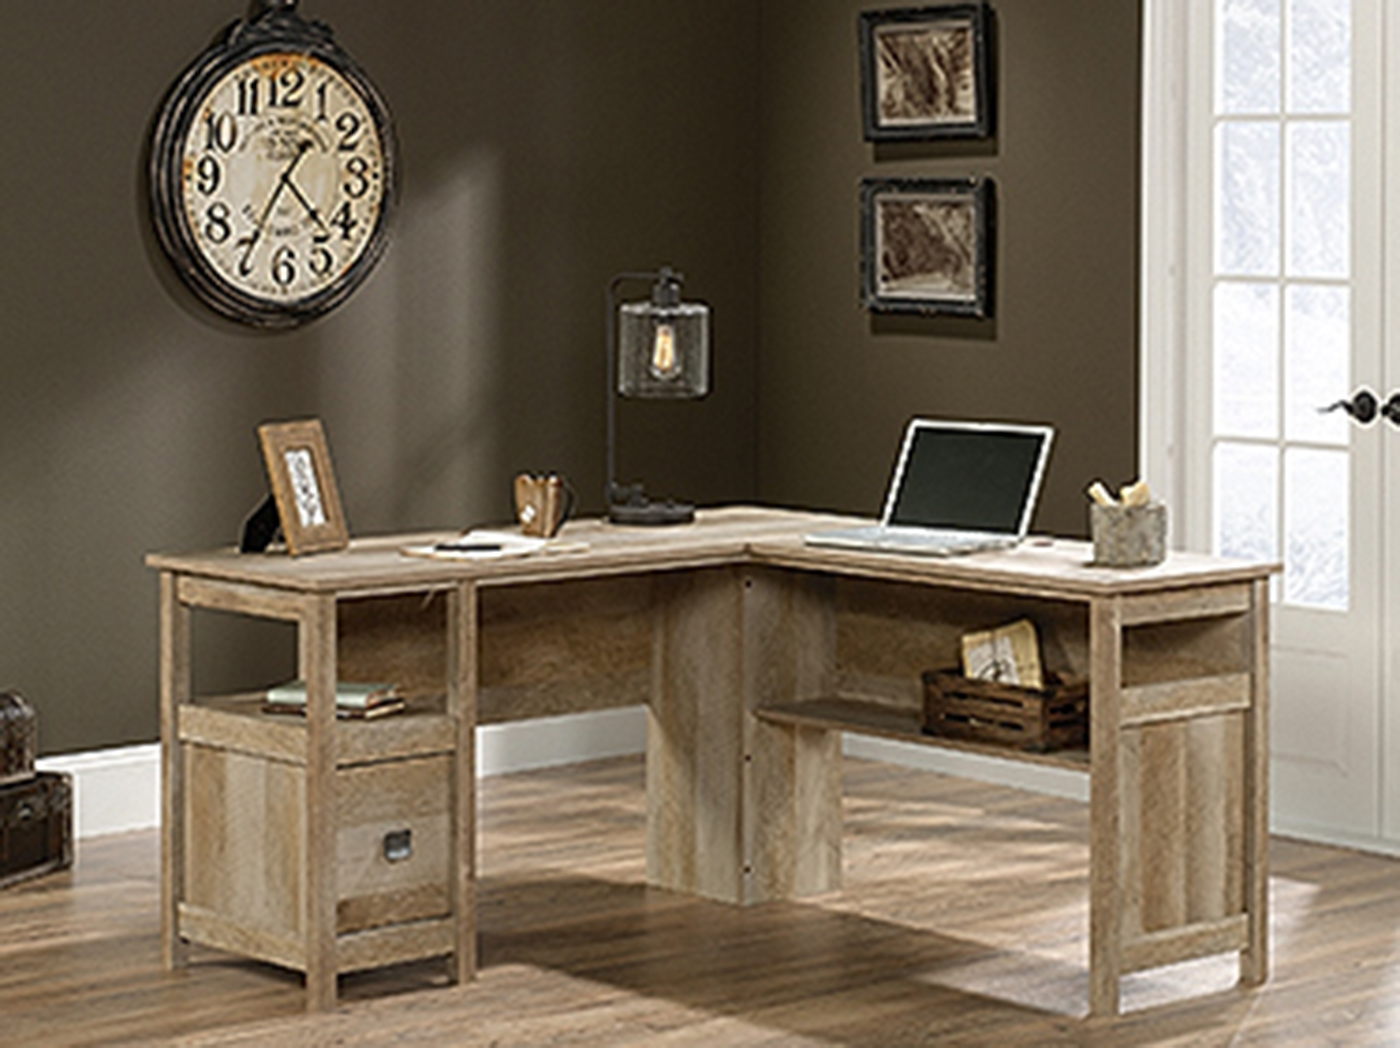 Cannery Bridge Desk